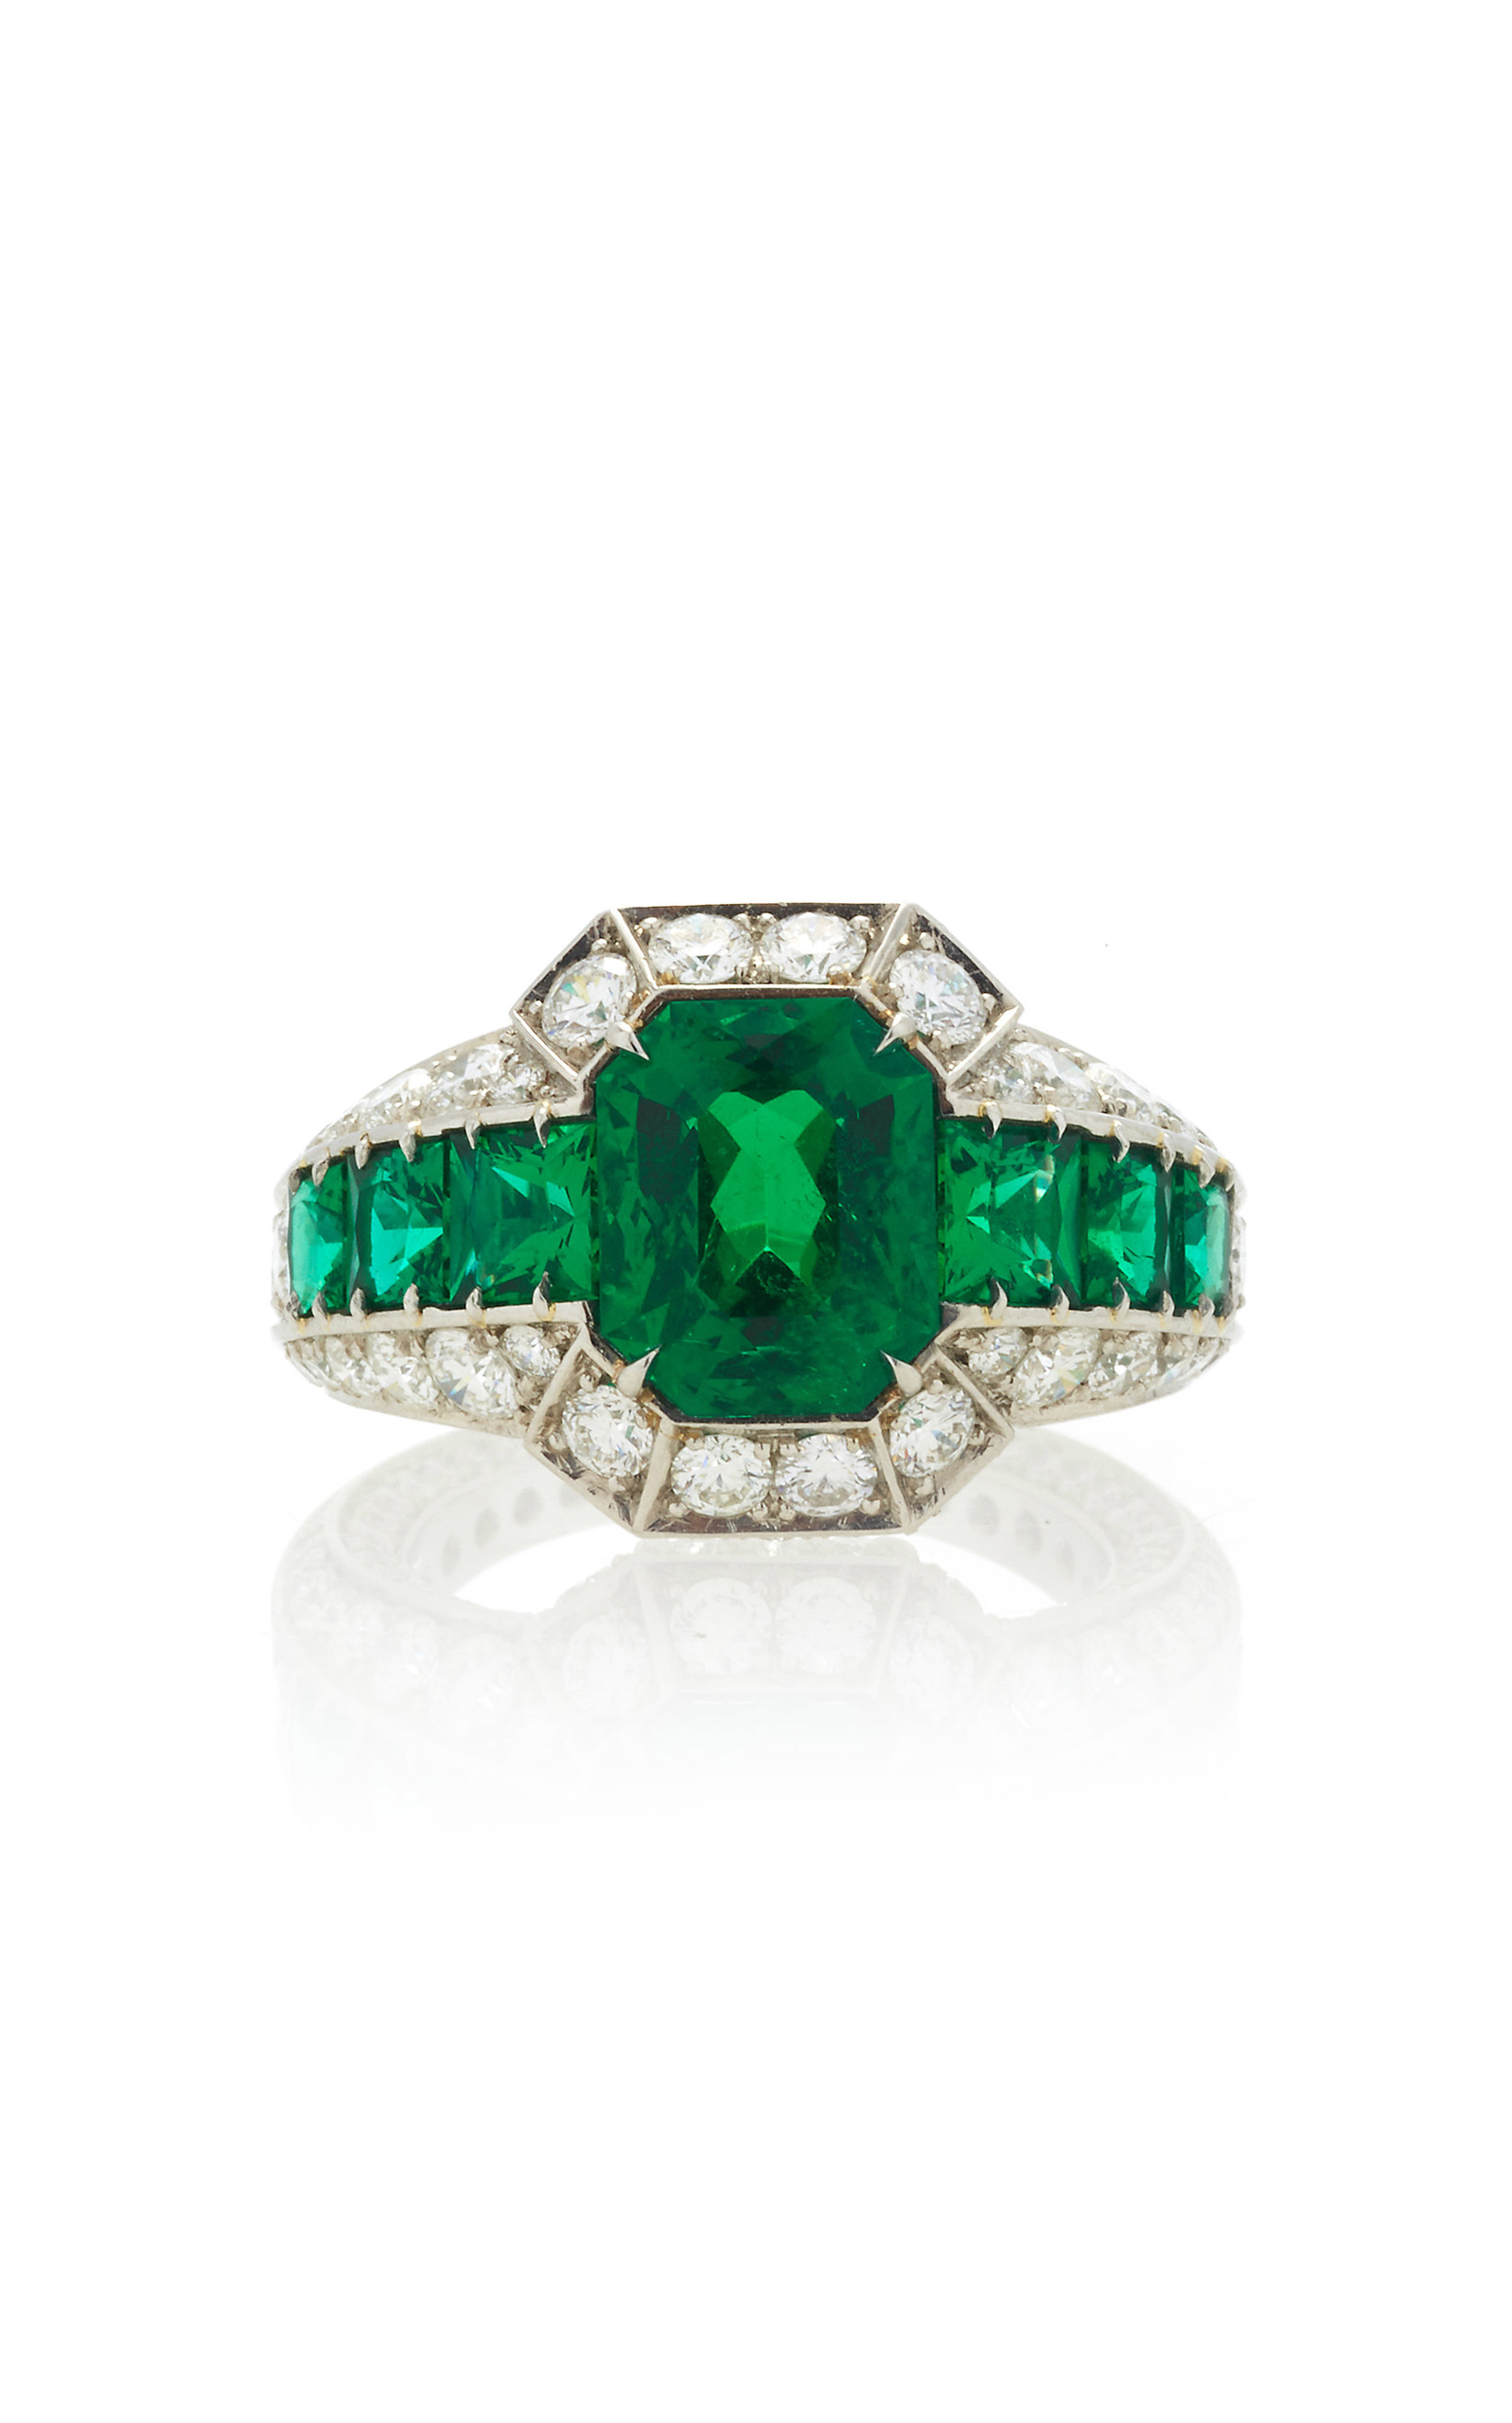 pin rings emeralds emerald pinterest emeral green jewelry google search